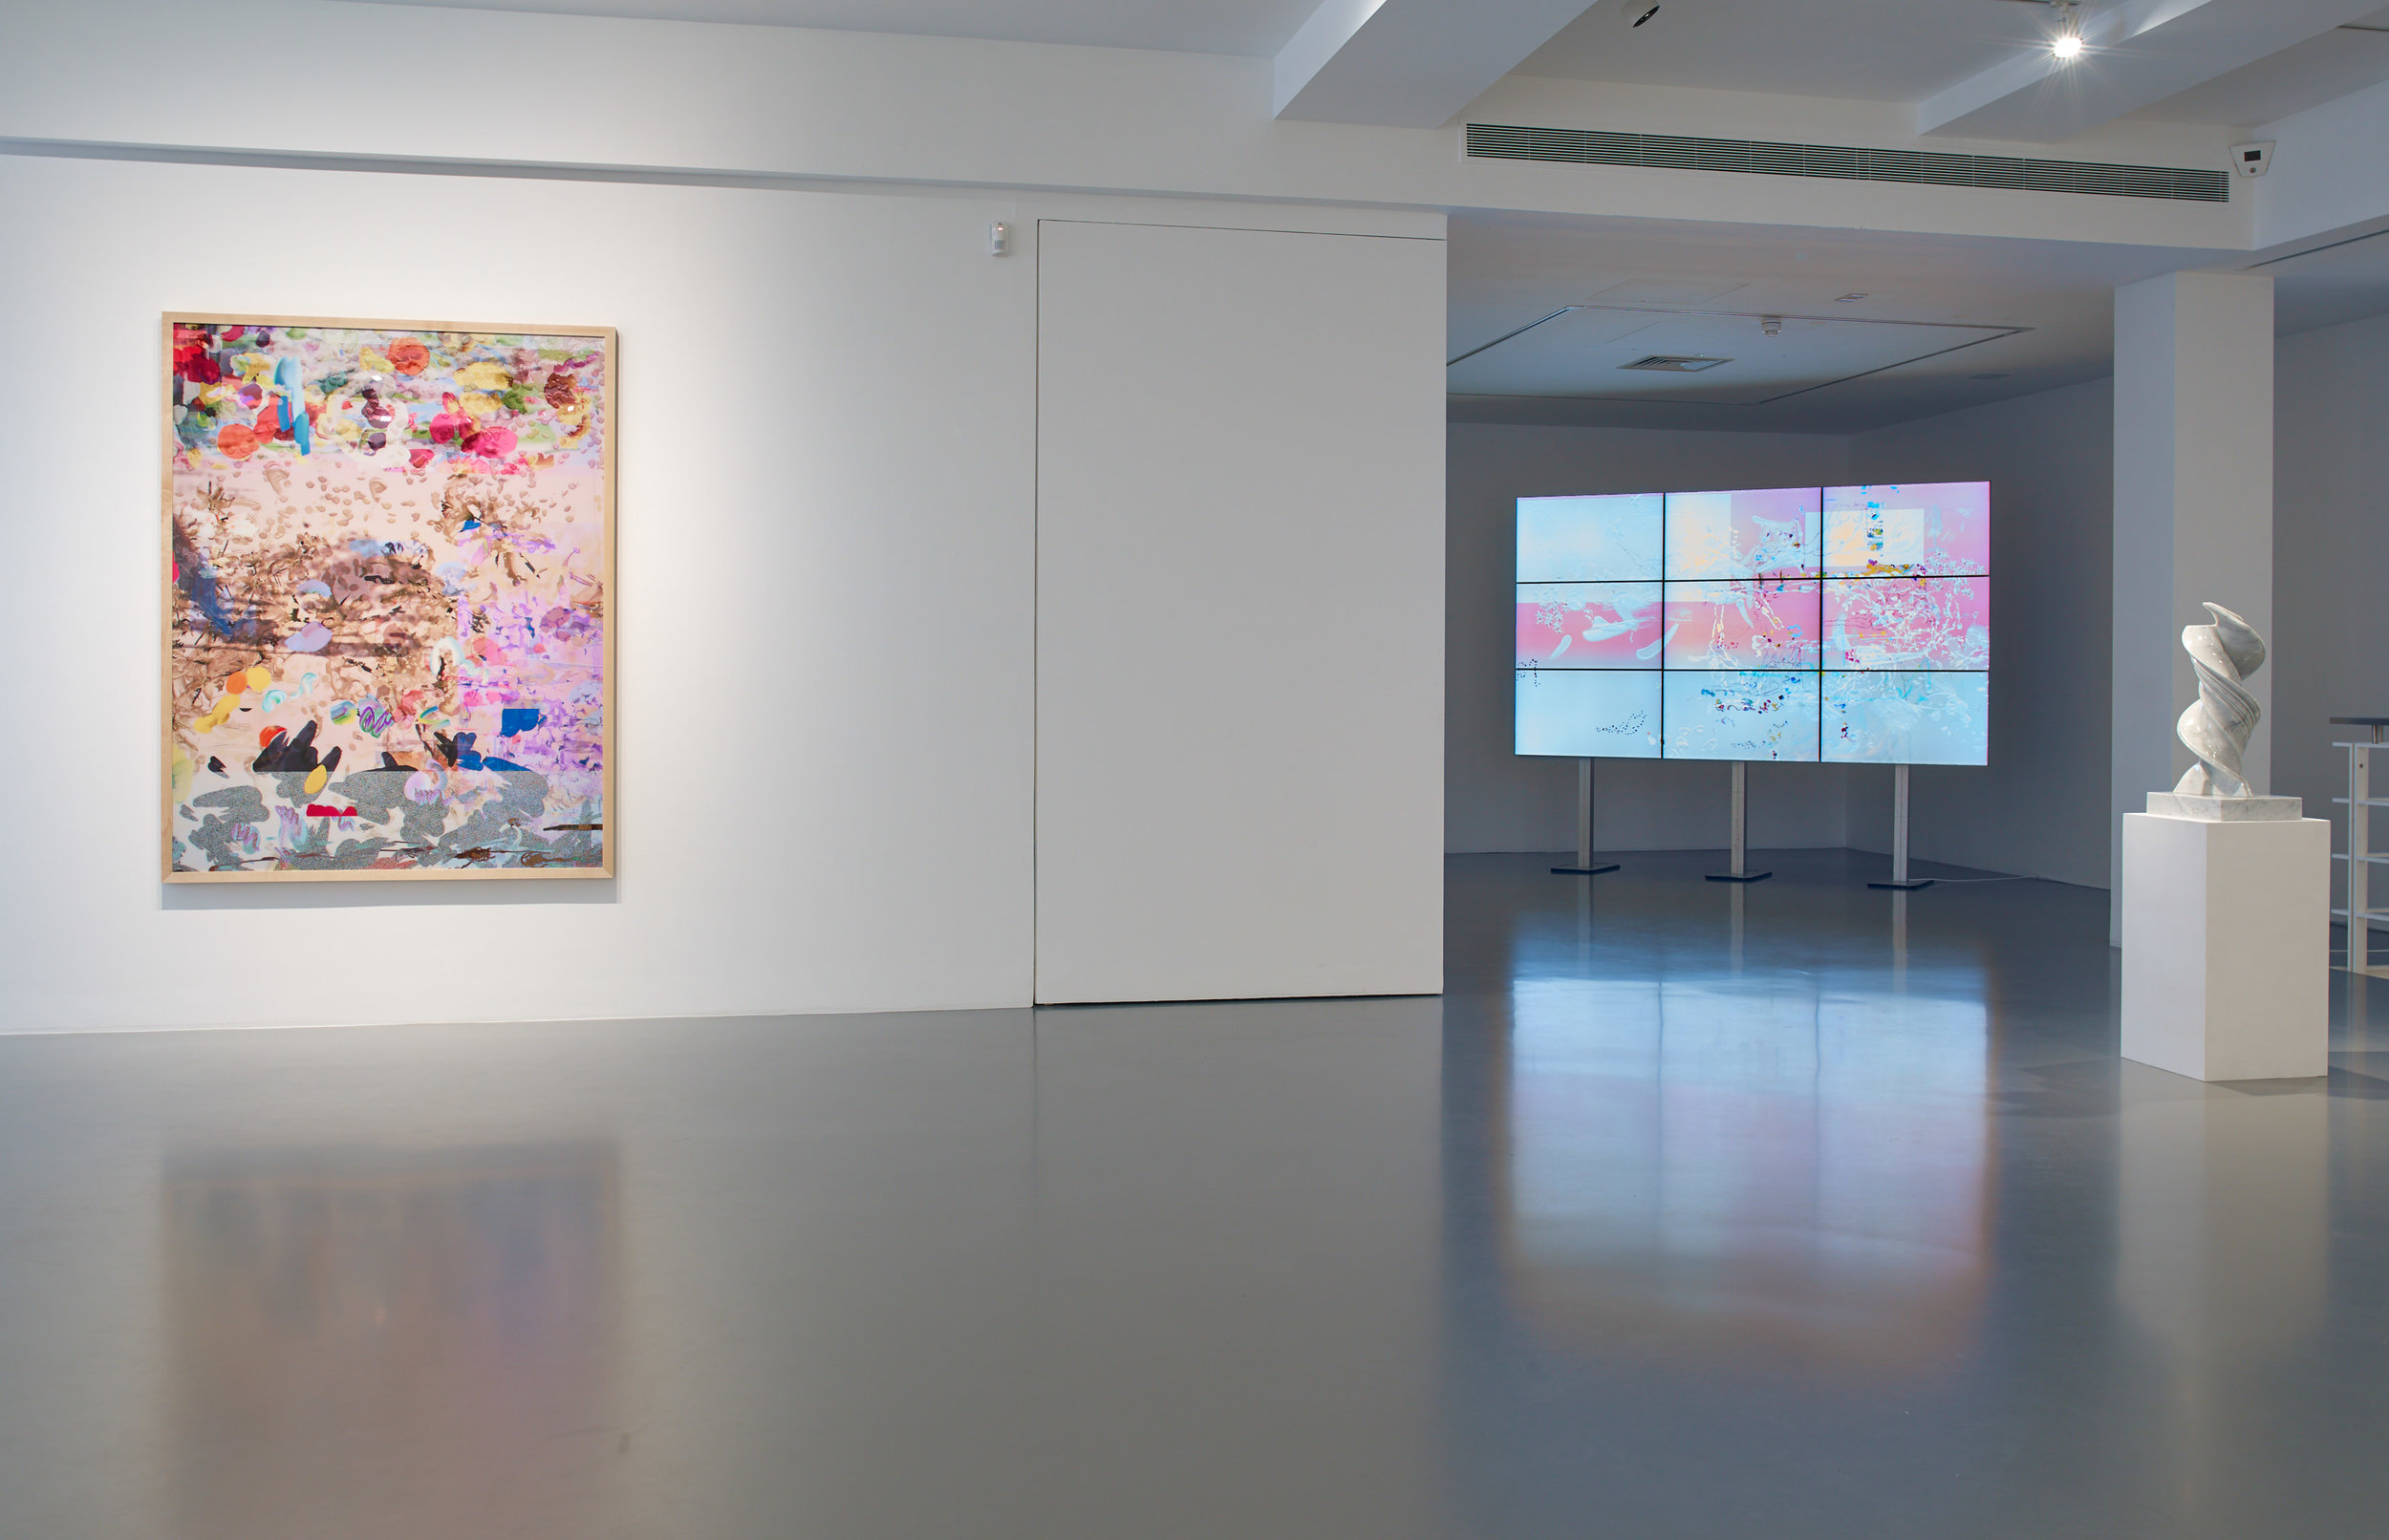 A Review of Petra Cortright: Pale Coil Cold Angel at Nahmad